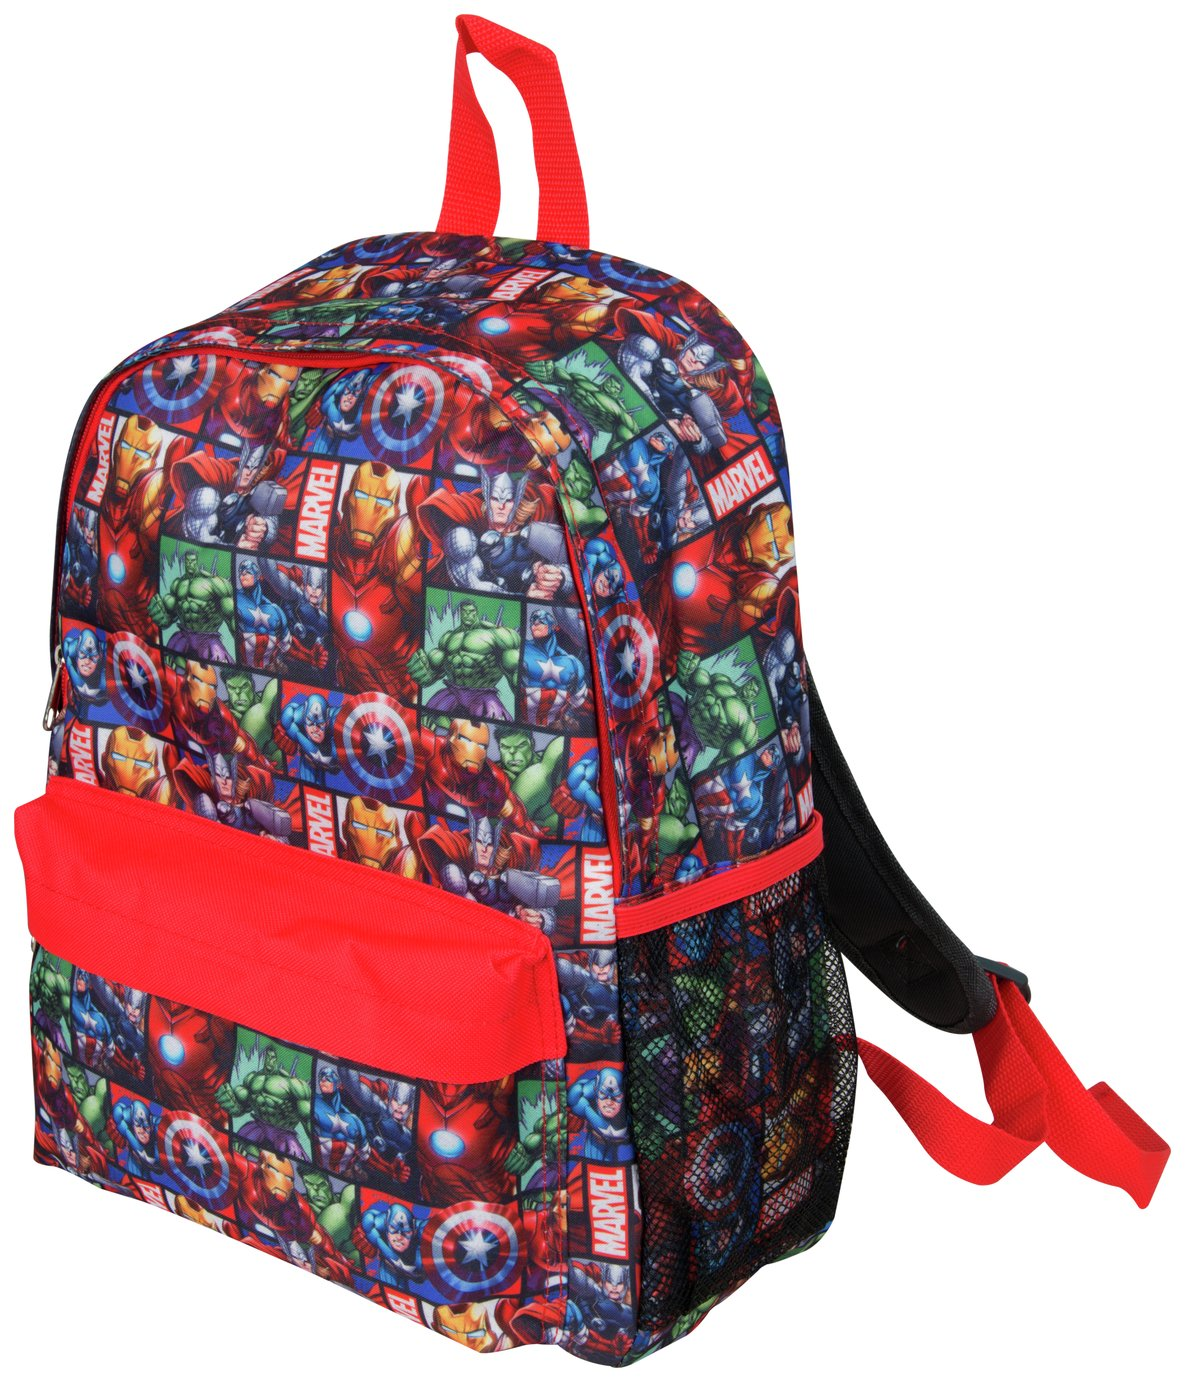 Marvel Avengers All Print 13.5L Backpack